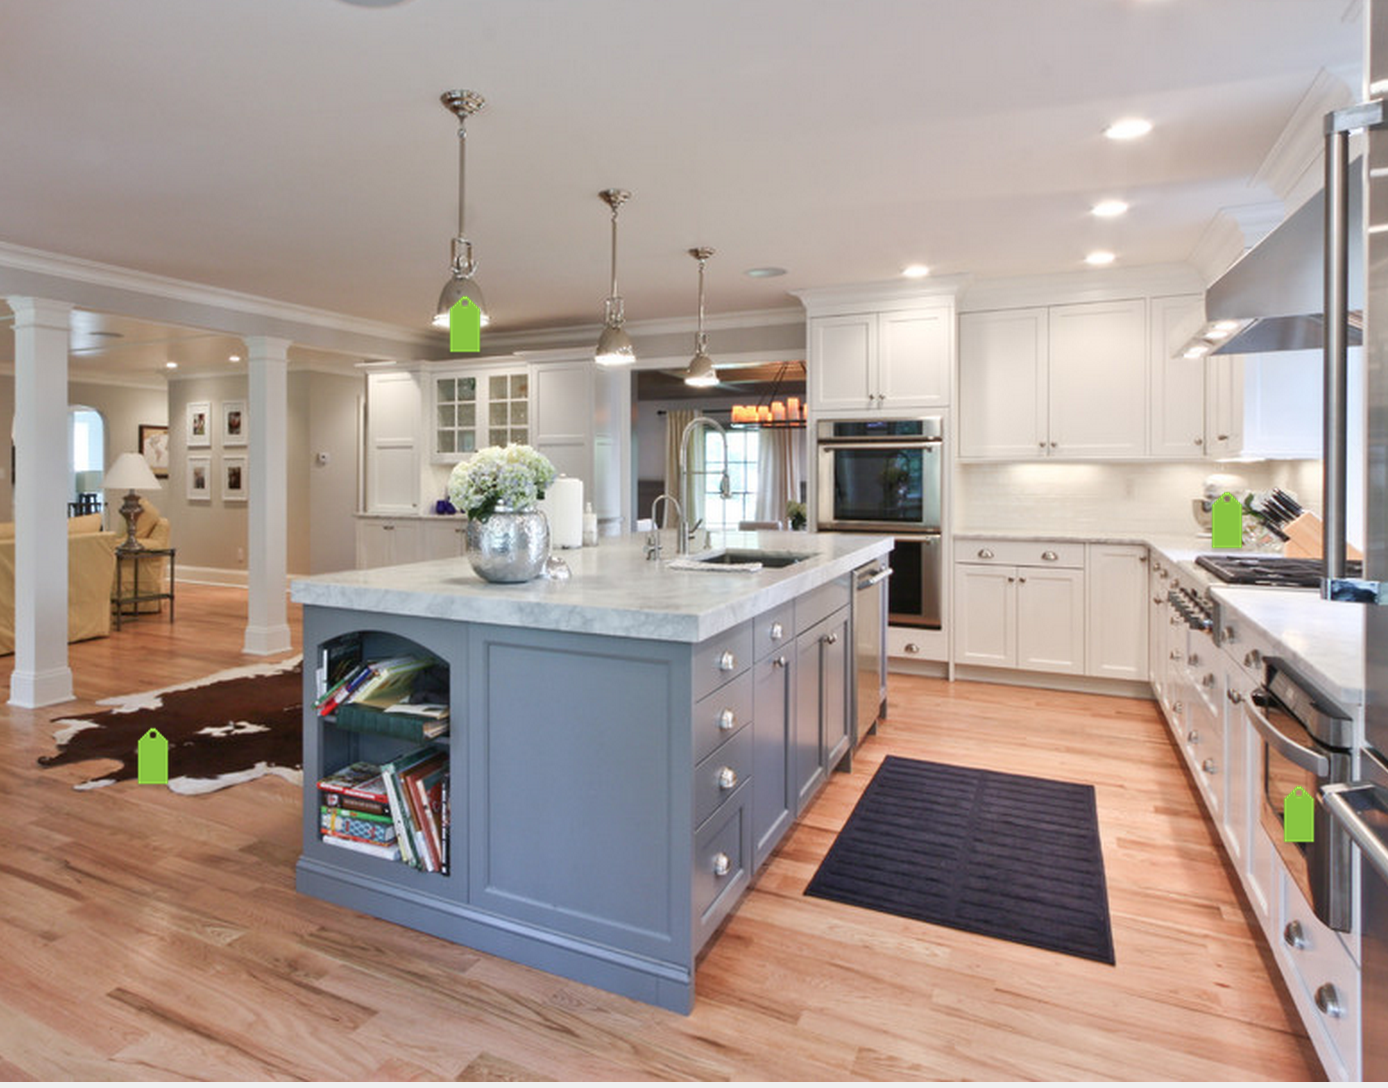 Blue This Is Not Paint It S A Brookhaven Cabinets Color It S Part Of The Designer Series I Think Custom Kitchen Island Dream Kitchen Island Kitchen Remodel